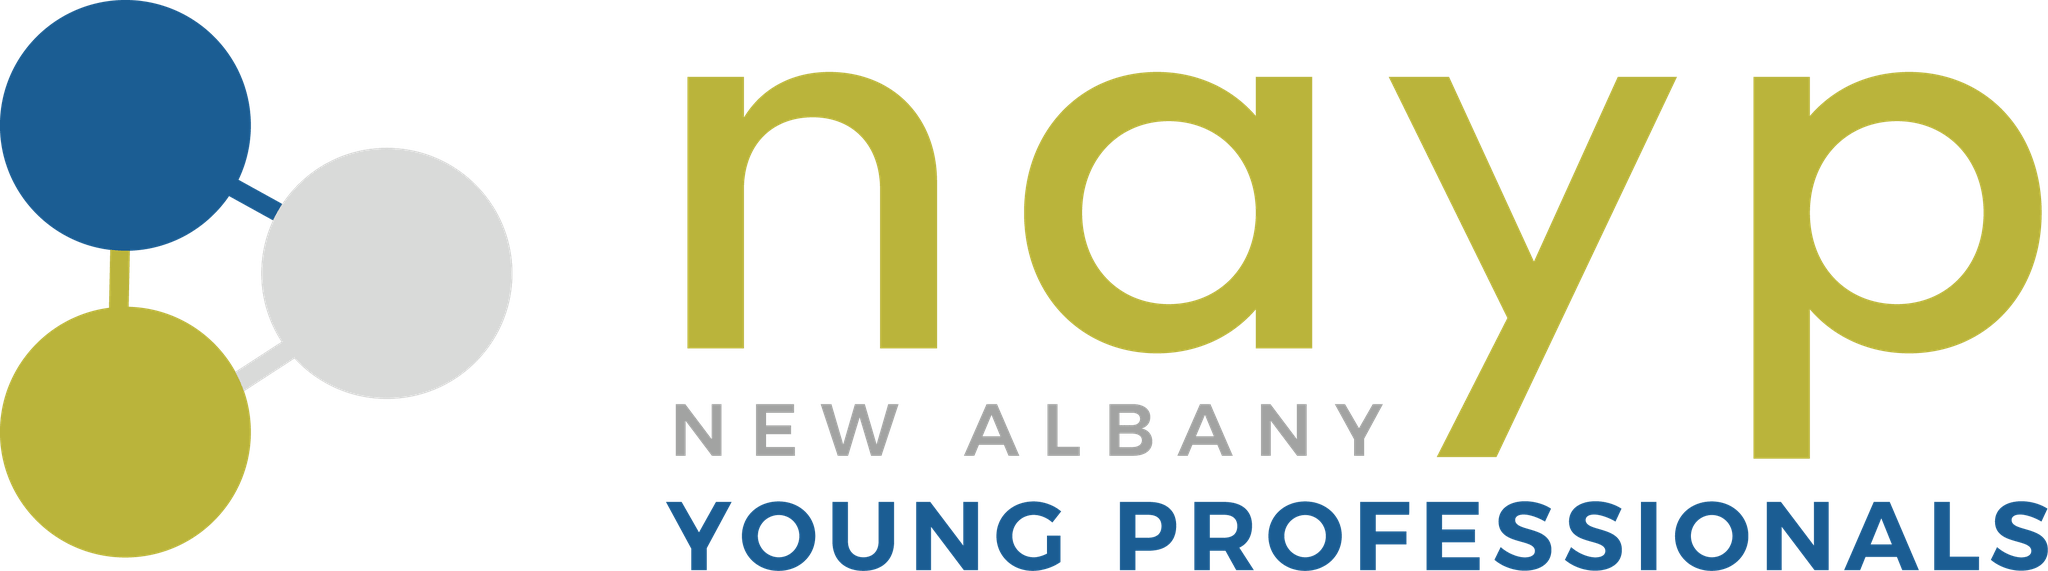 New ALbany Young Professionals Logo